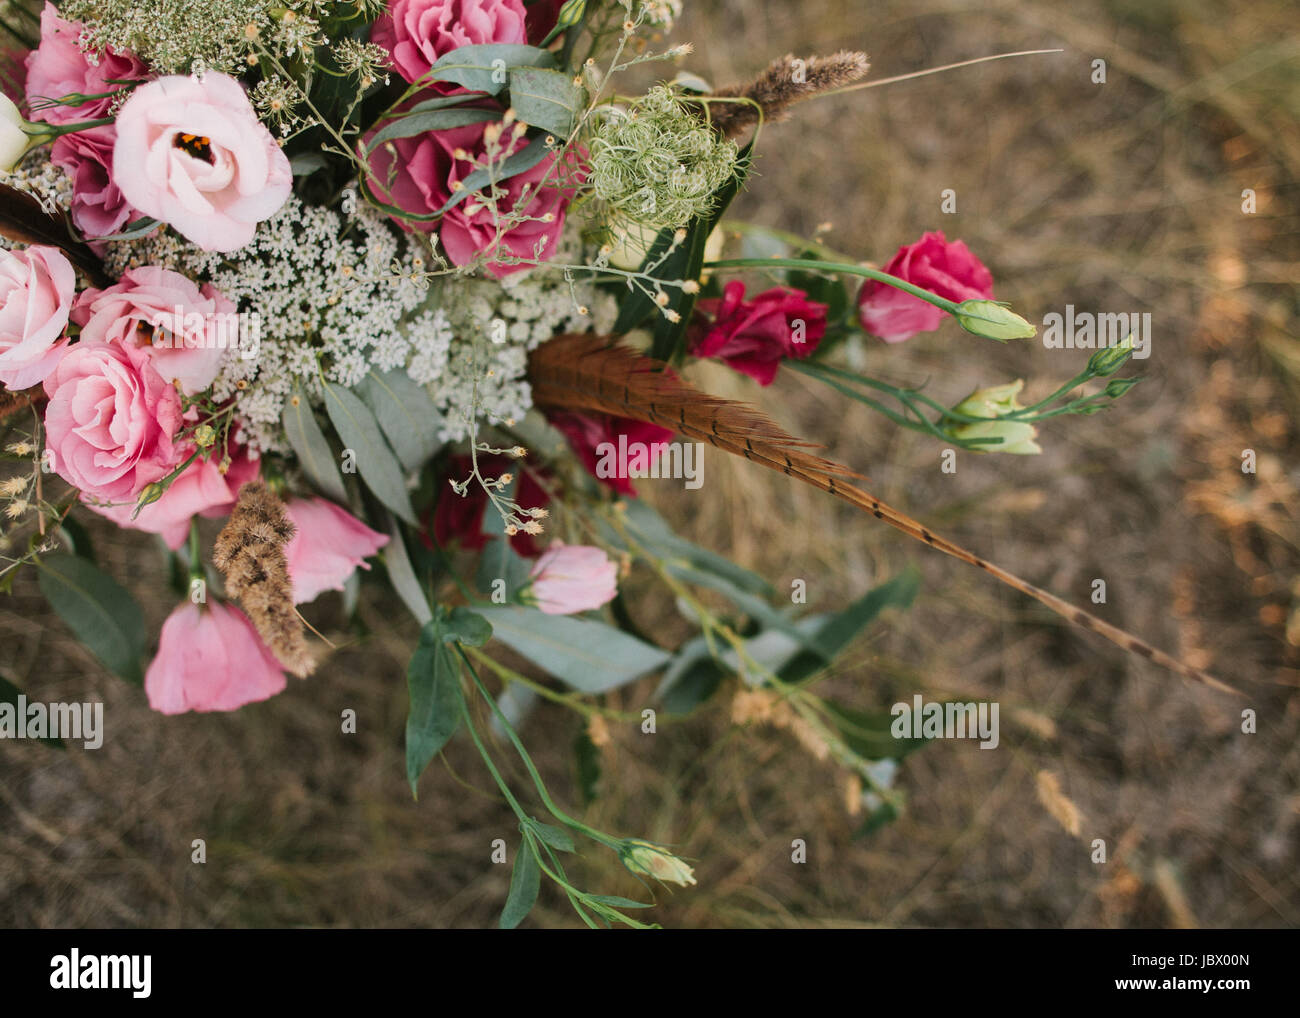 Flower composition outdoor. event, engagement concept. - Stock Image